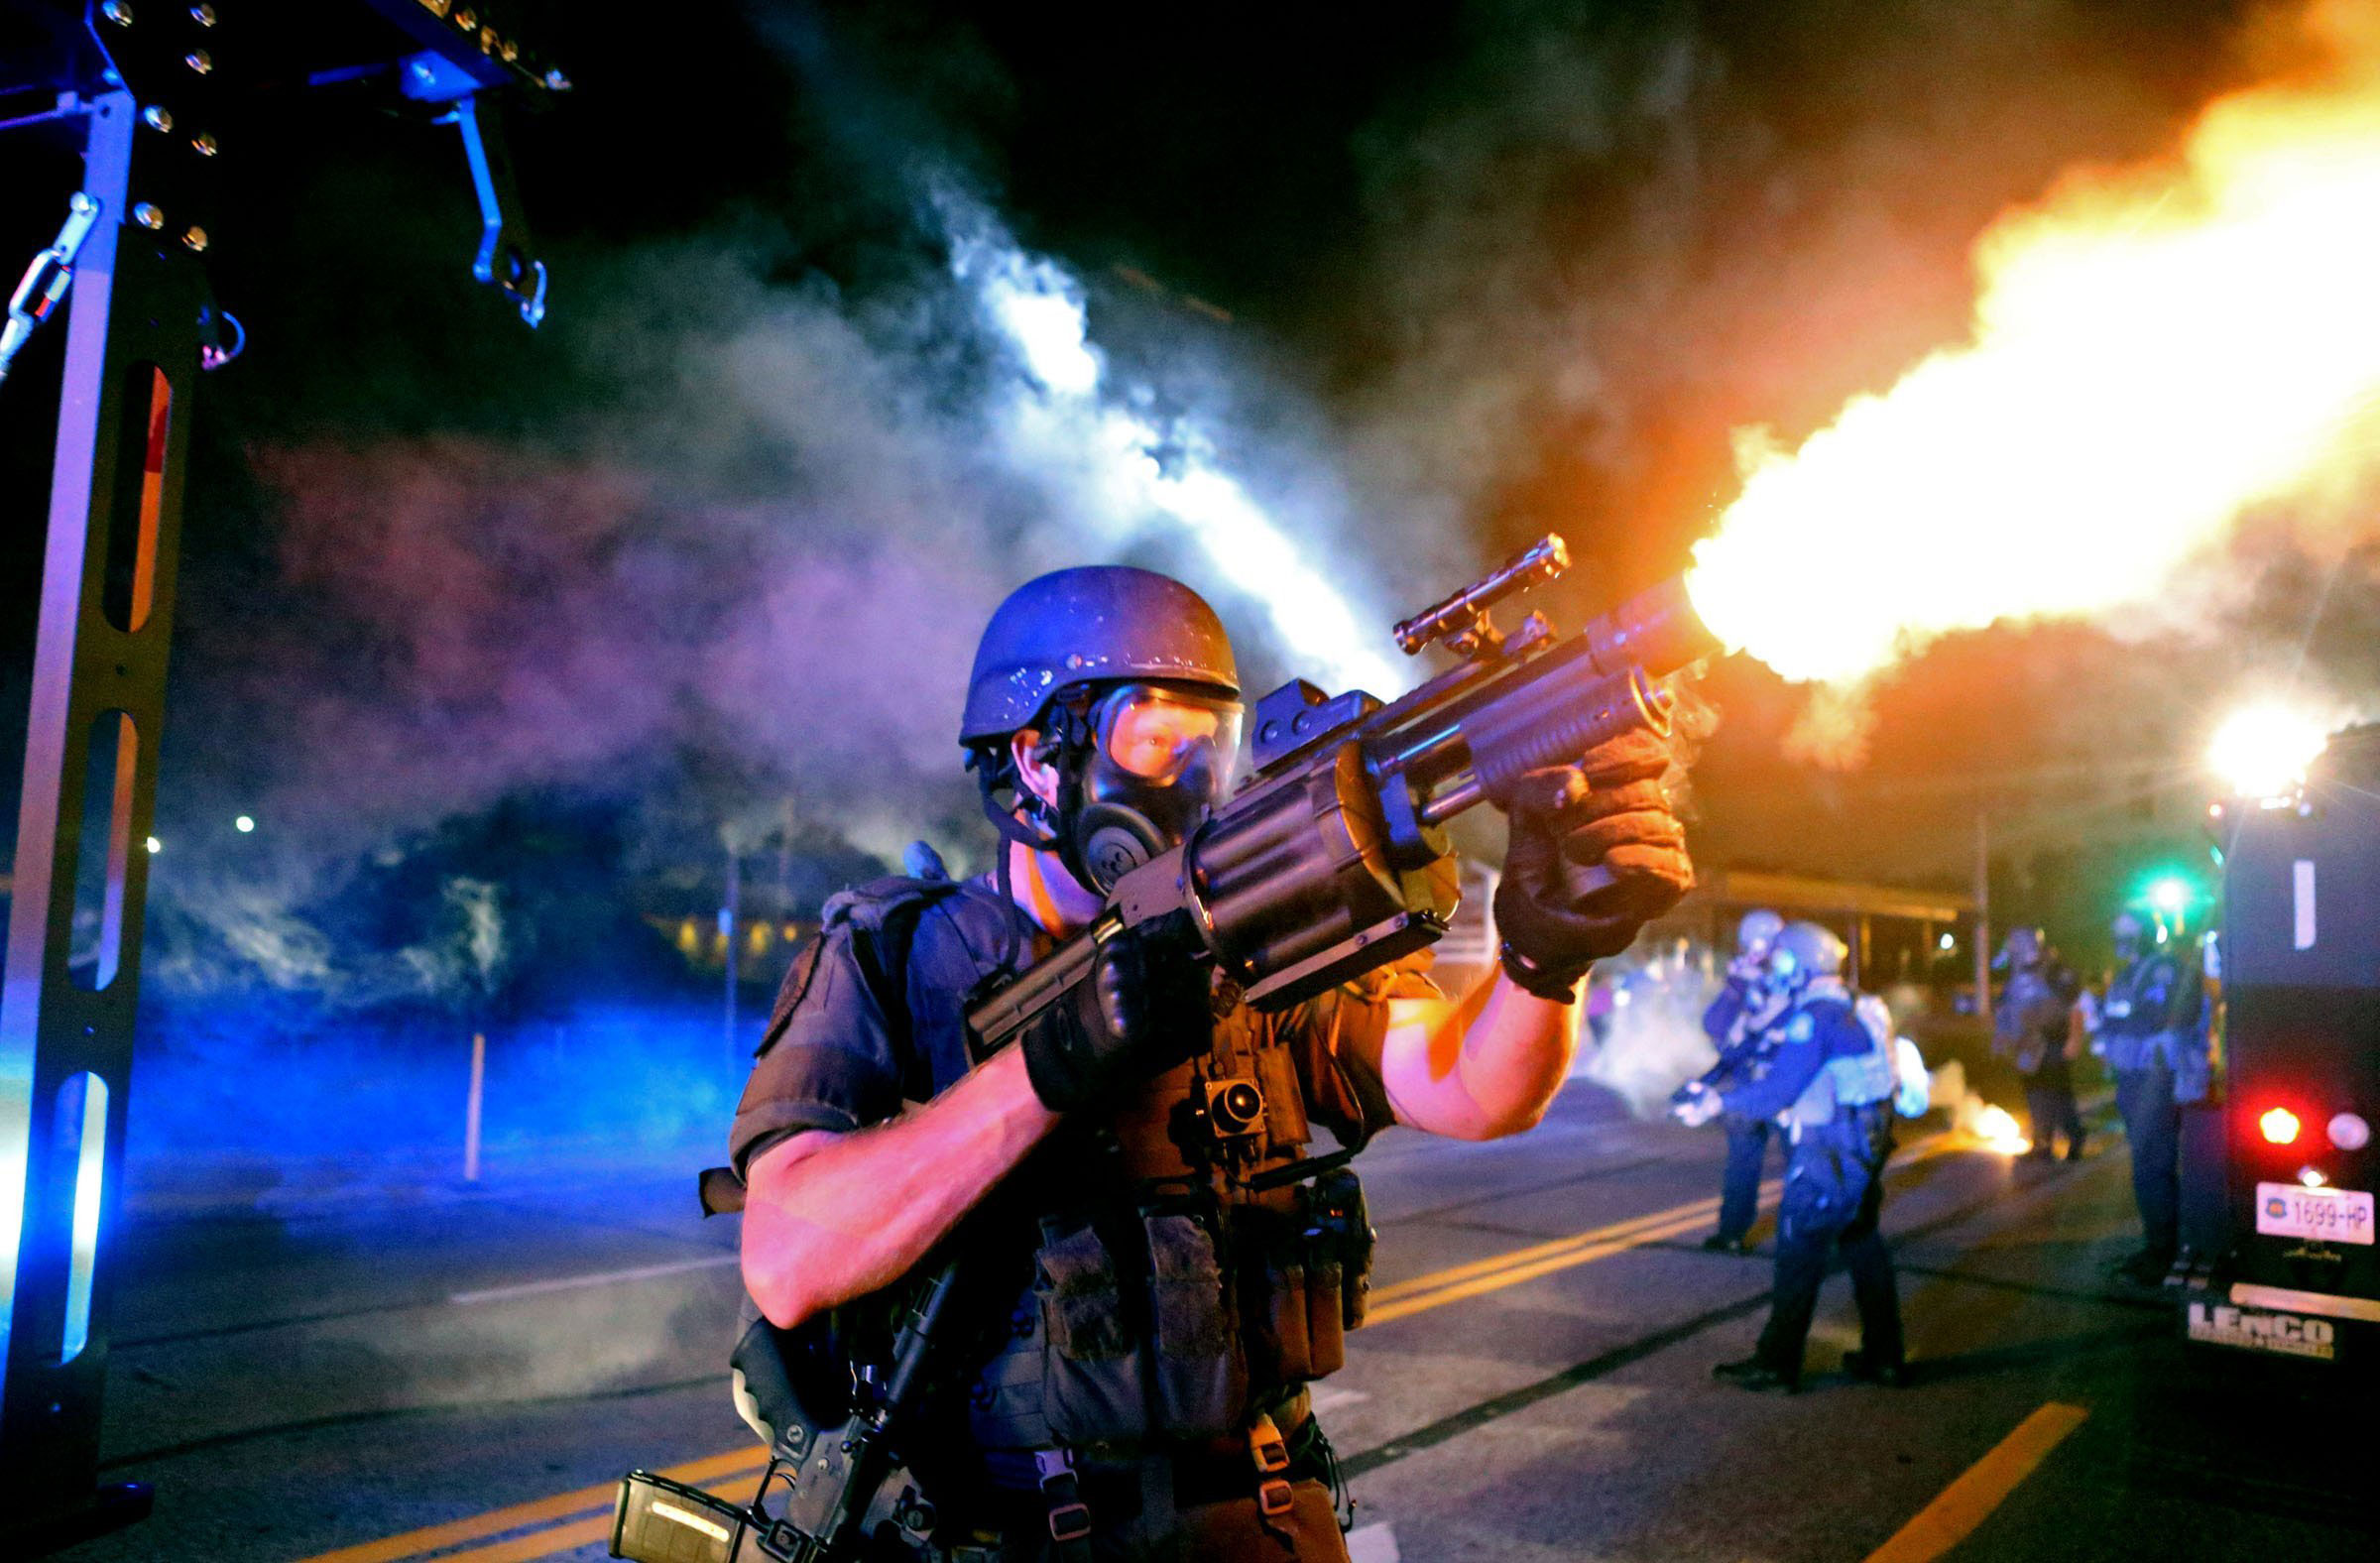 Police fire tear gas after protesters threw bottles in Ferguson, Mo., Aug. 18, 2014.